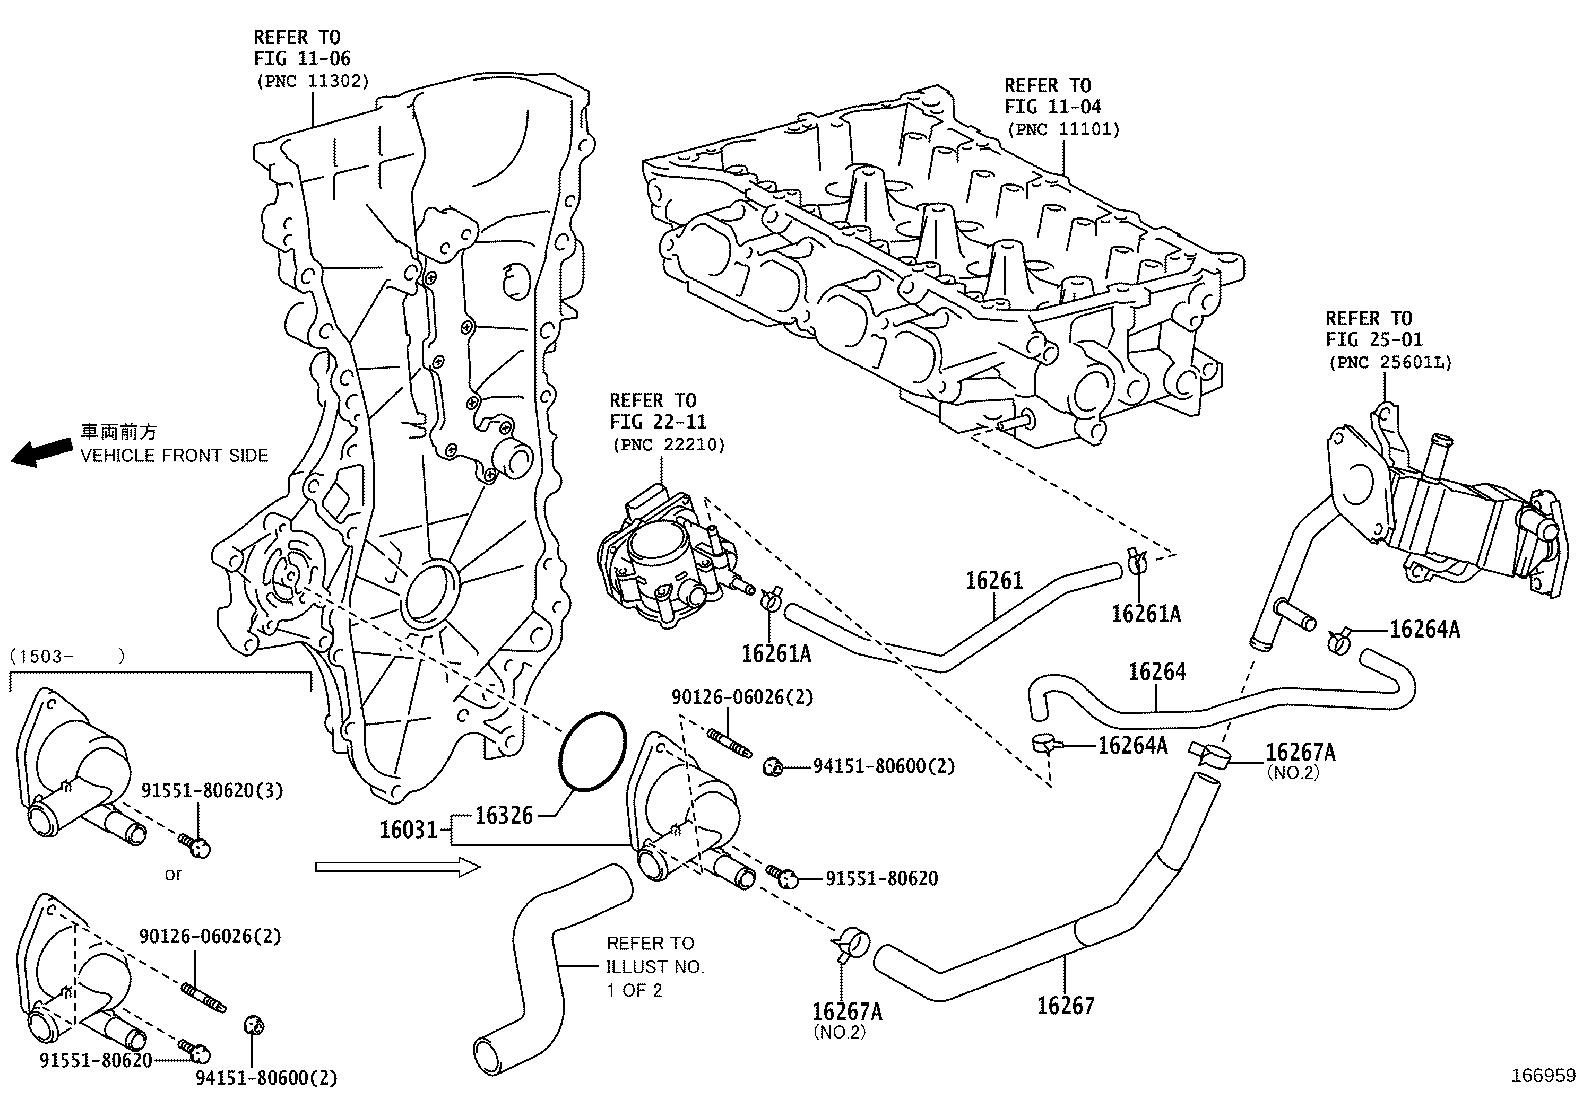 2010 Toyota Prius Hose, water by-pass, no. 2. Engine